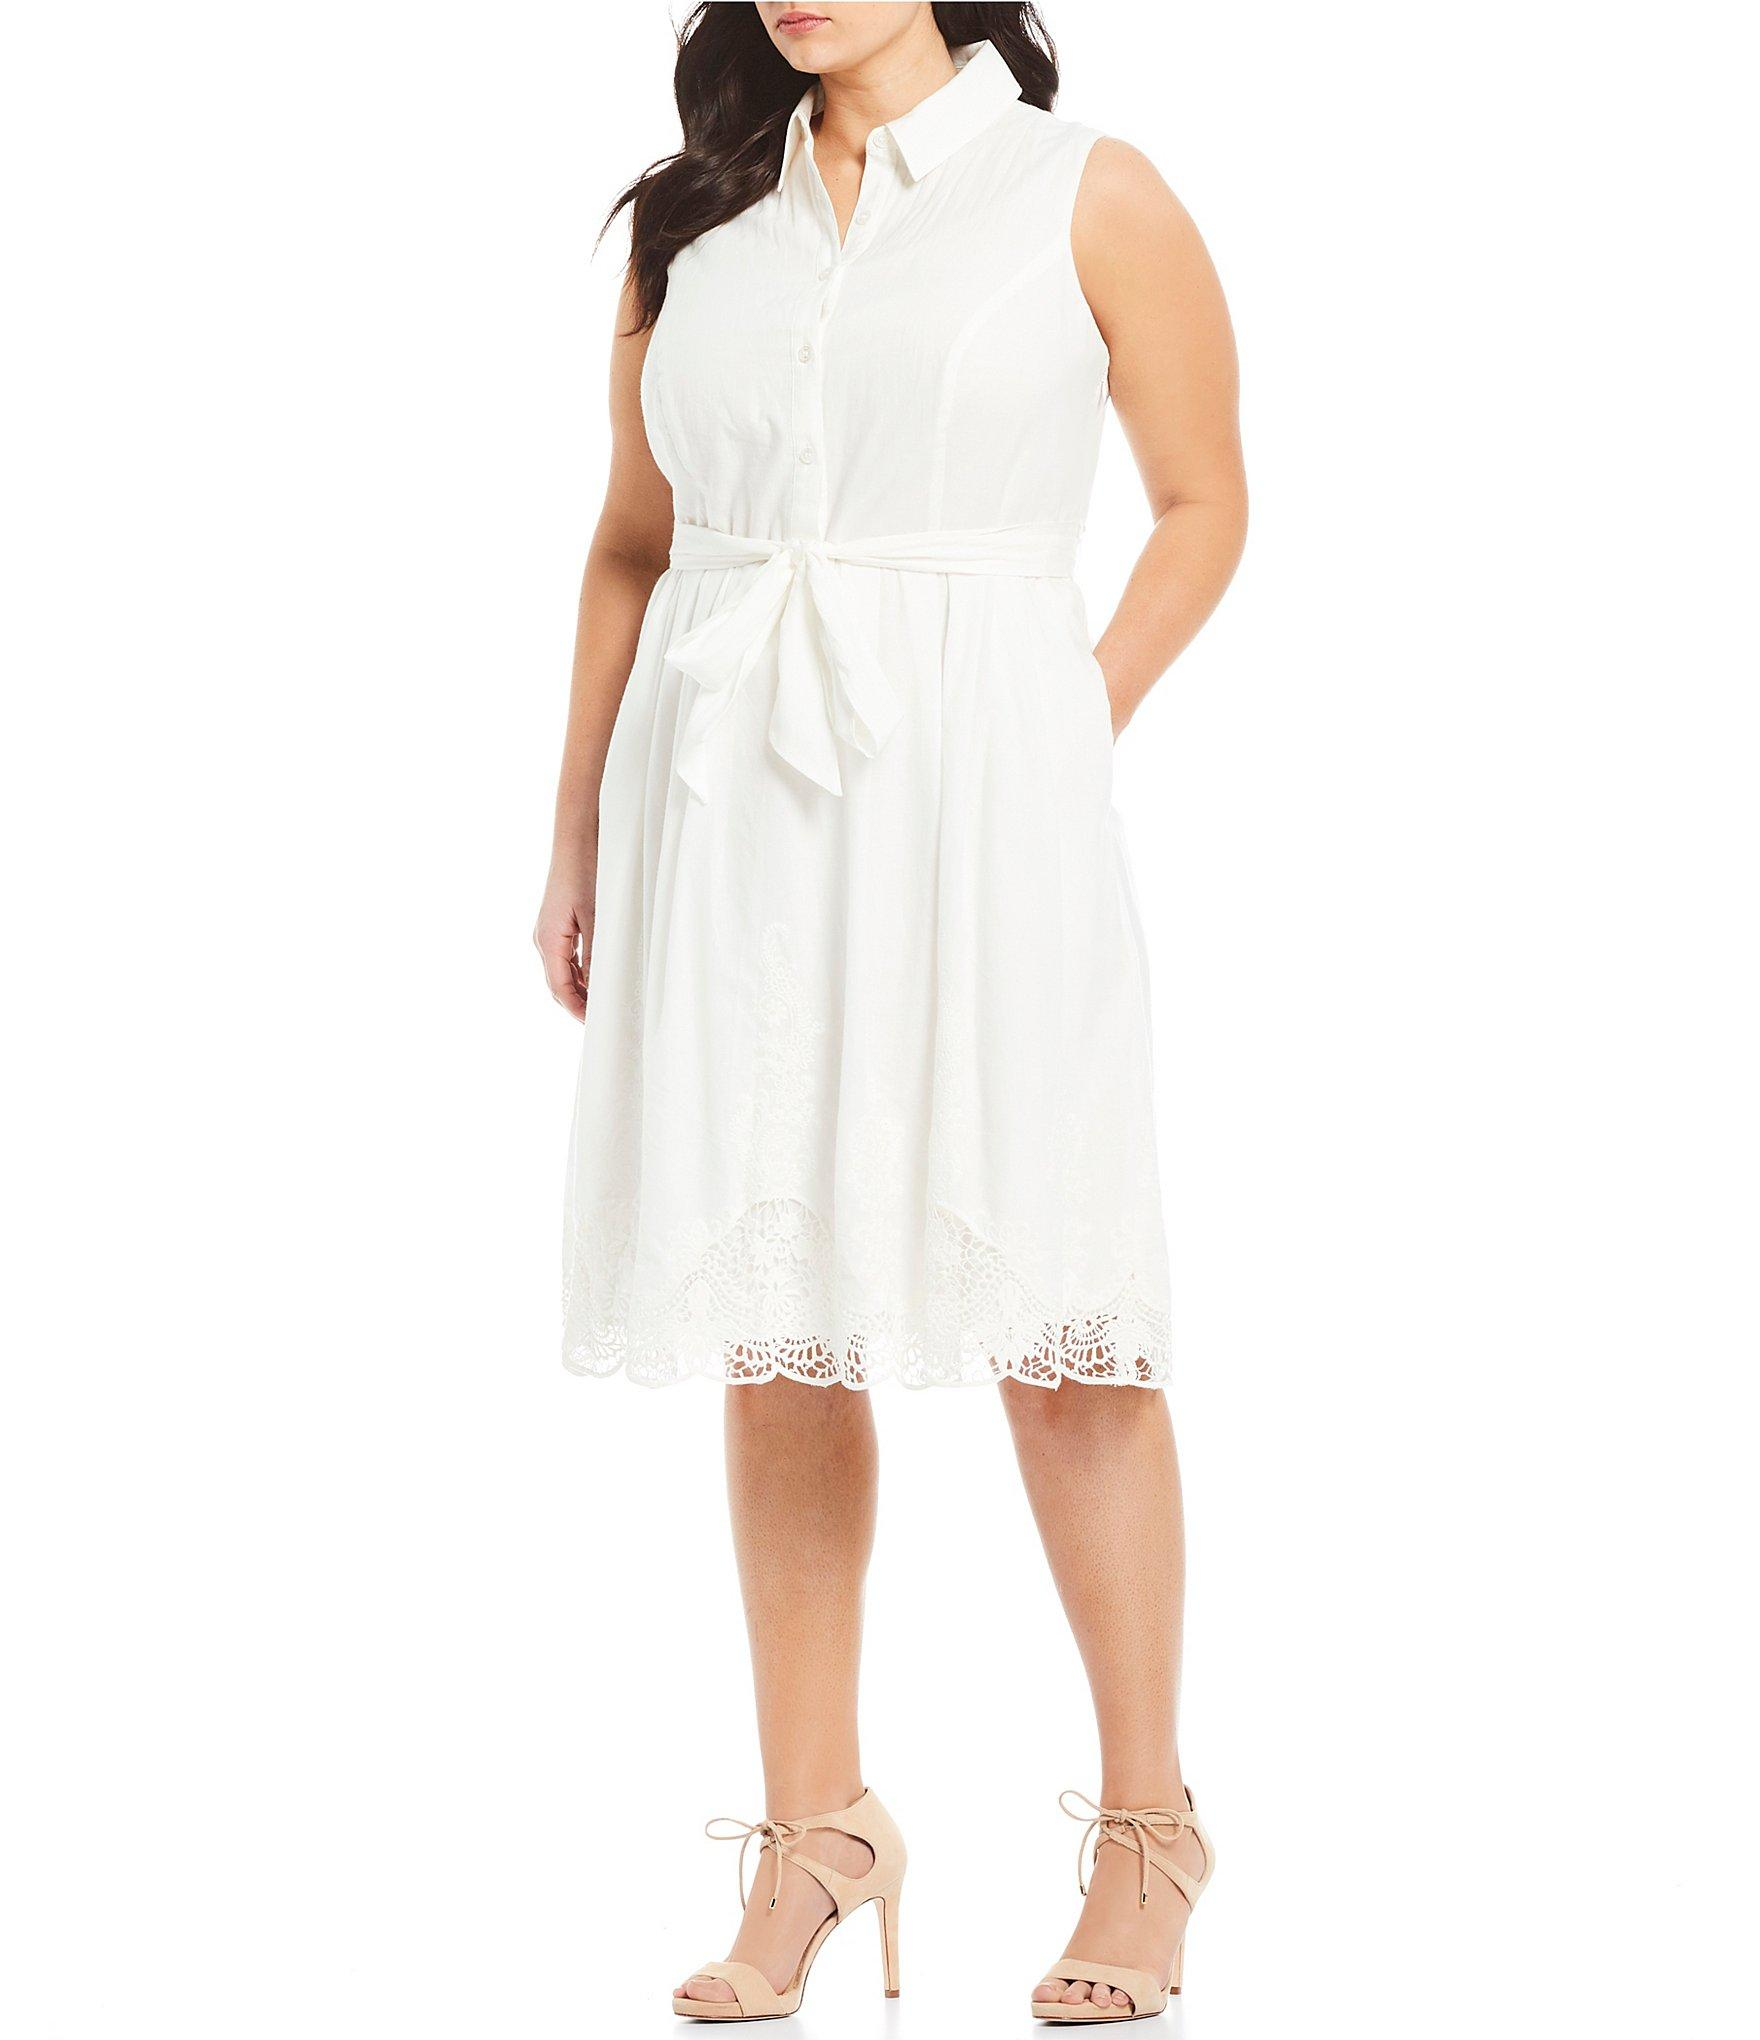 2fbe7533c1c Lyst - Tahari Plus Size Sleeveless Embroidered Trim Fit And Flare ...